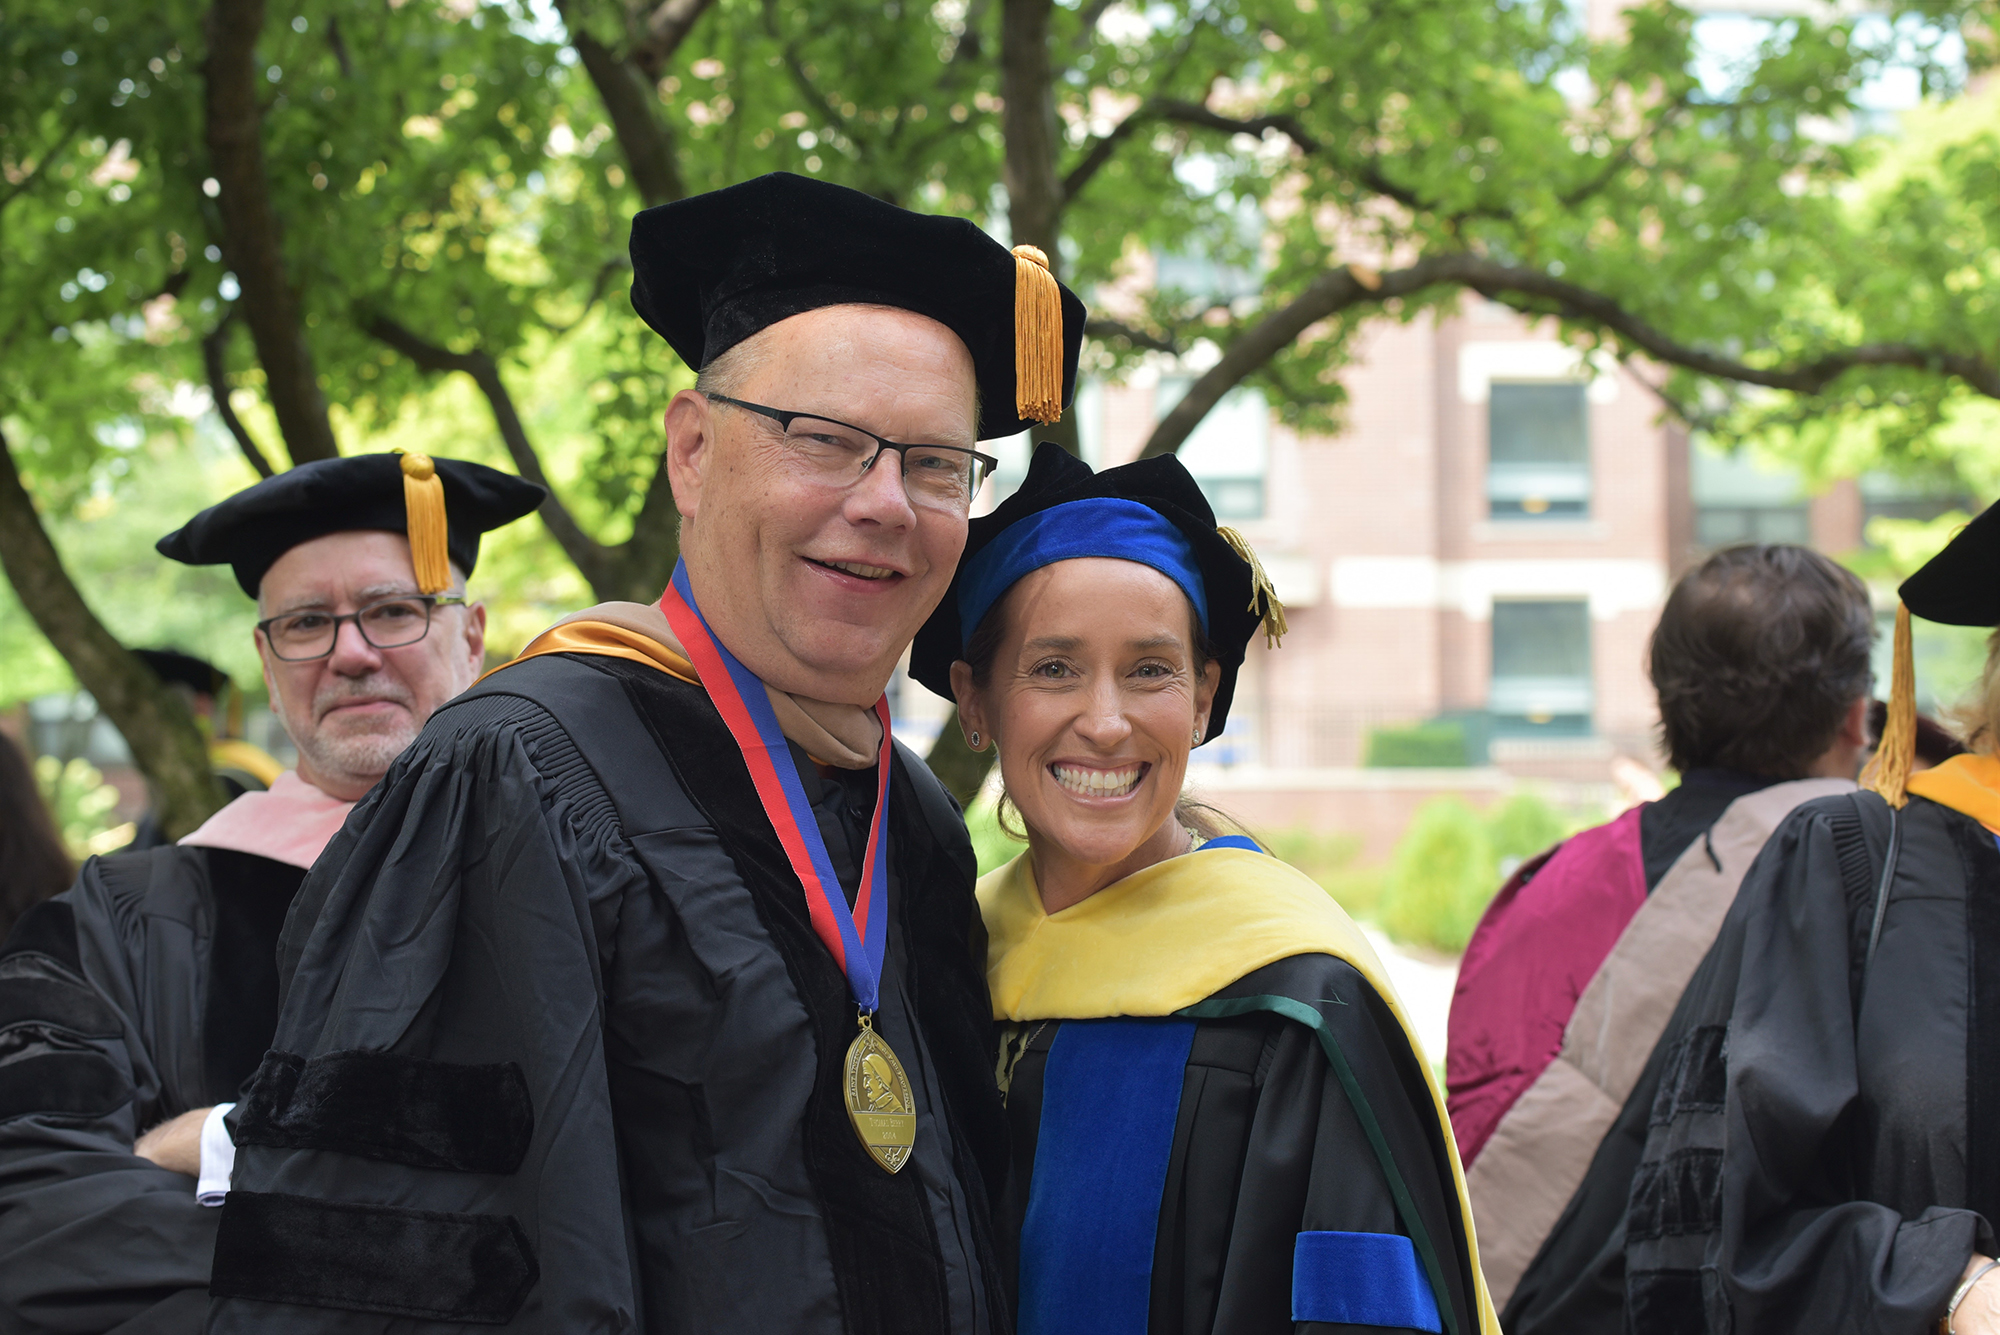 Business College Associate Dean Tom Berry and Dean Misty Johanson